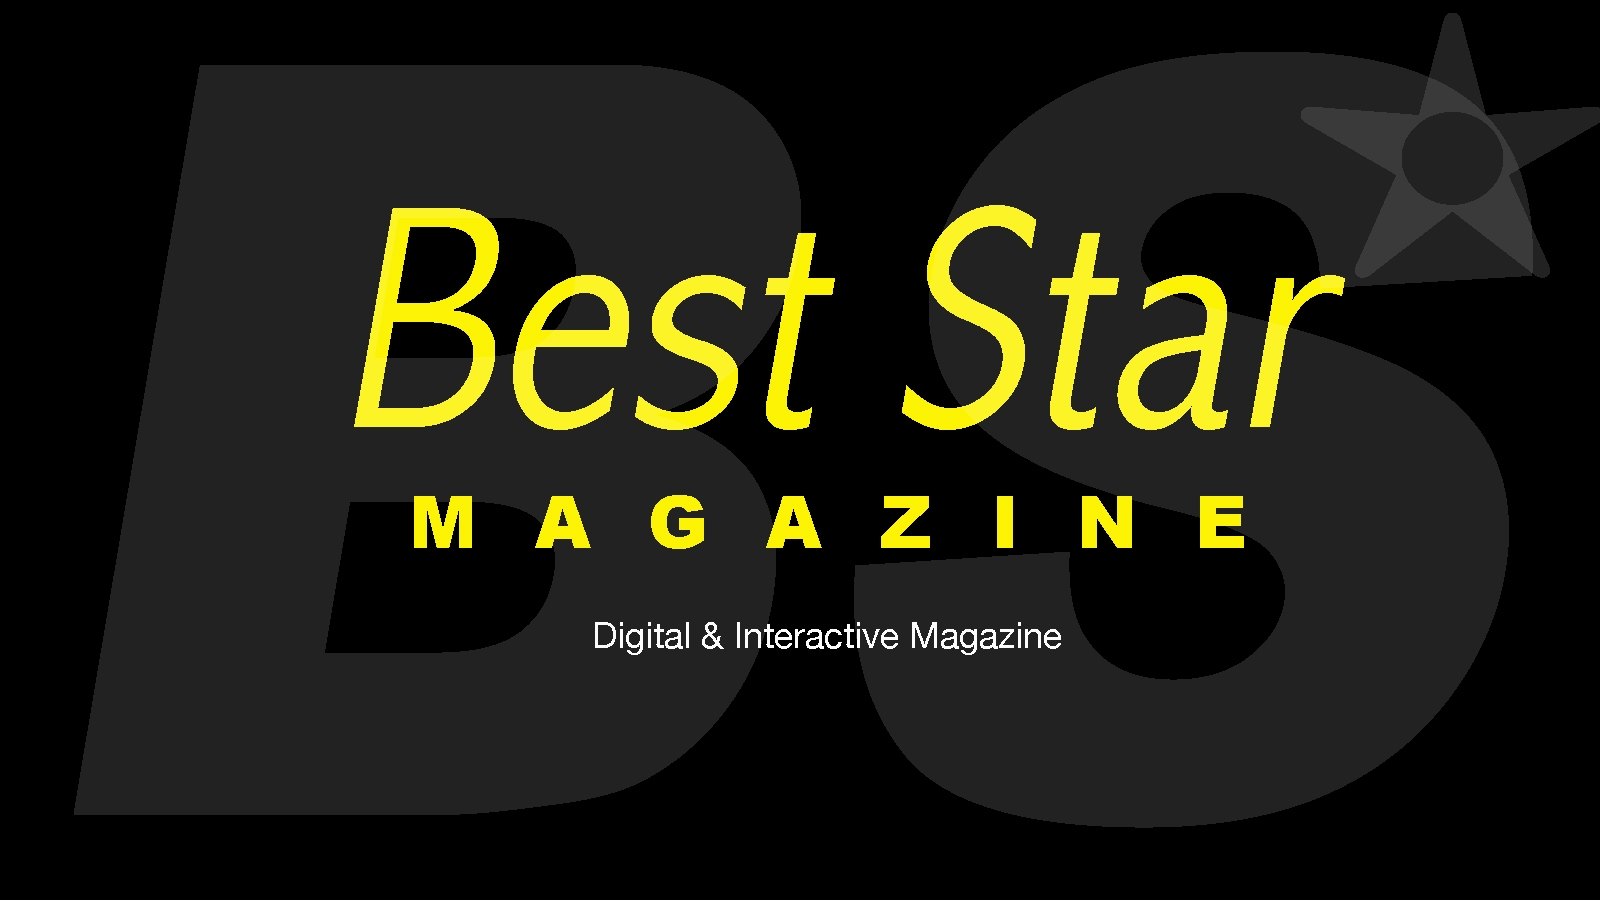 logo-BEST-STAR-Digital-Interactive-Magazine